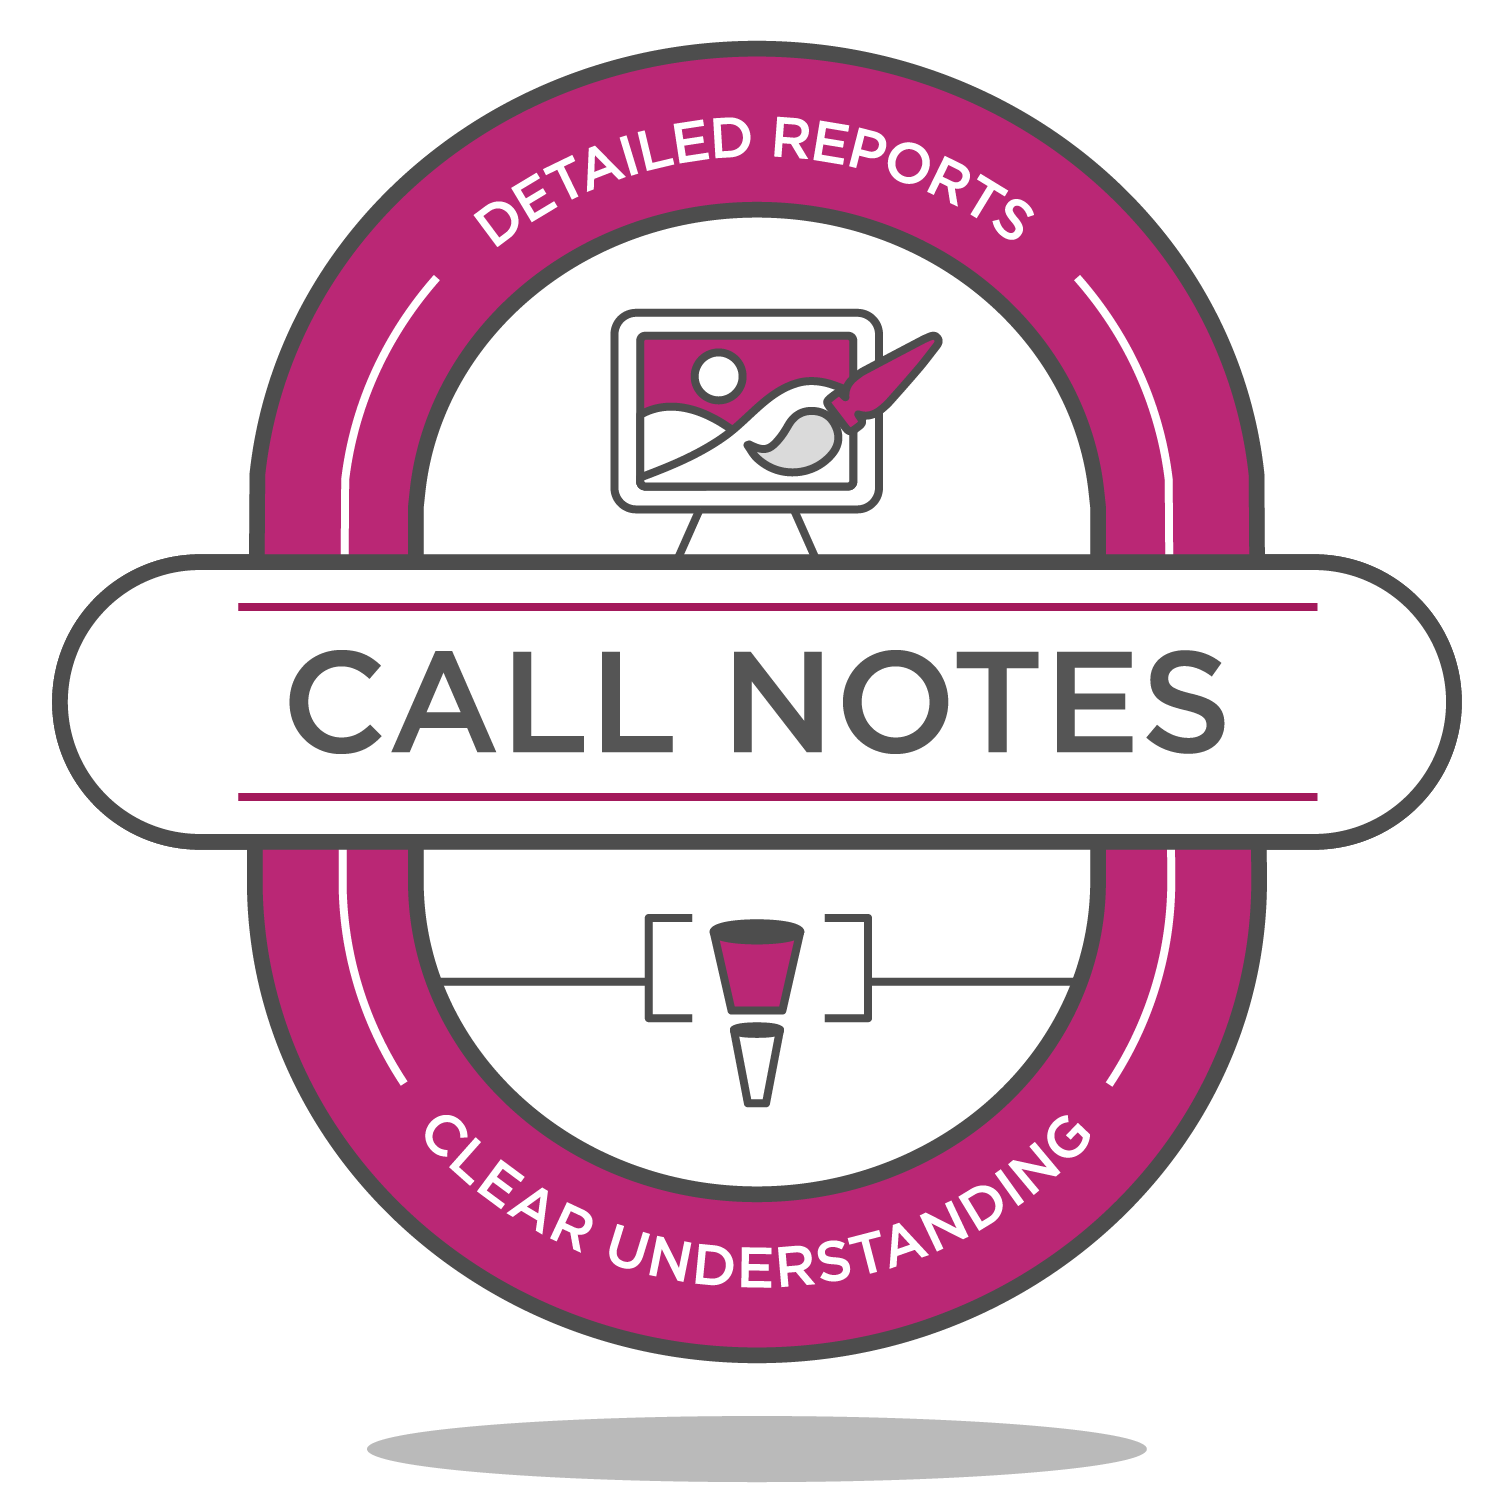 call notes badge icon